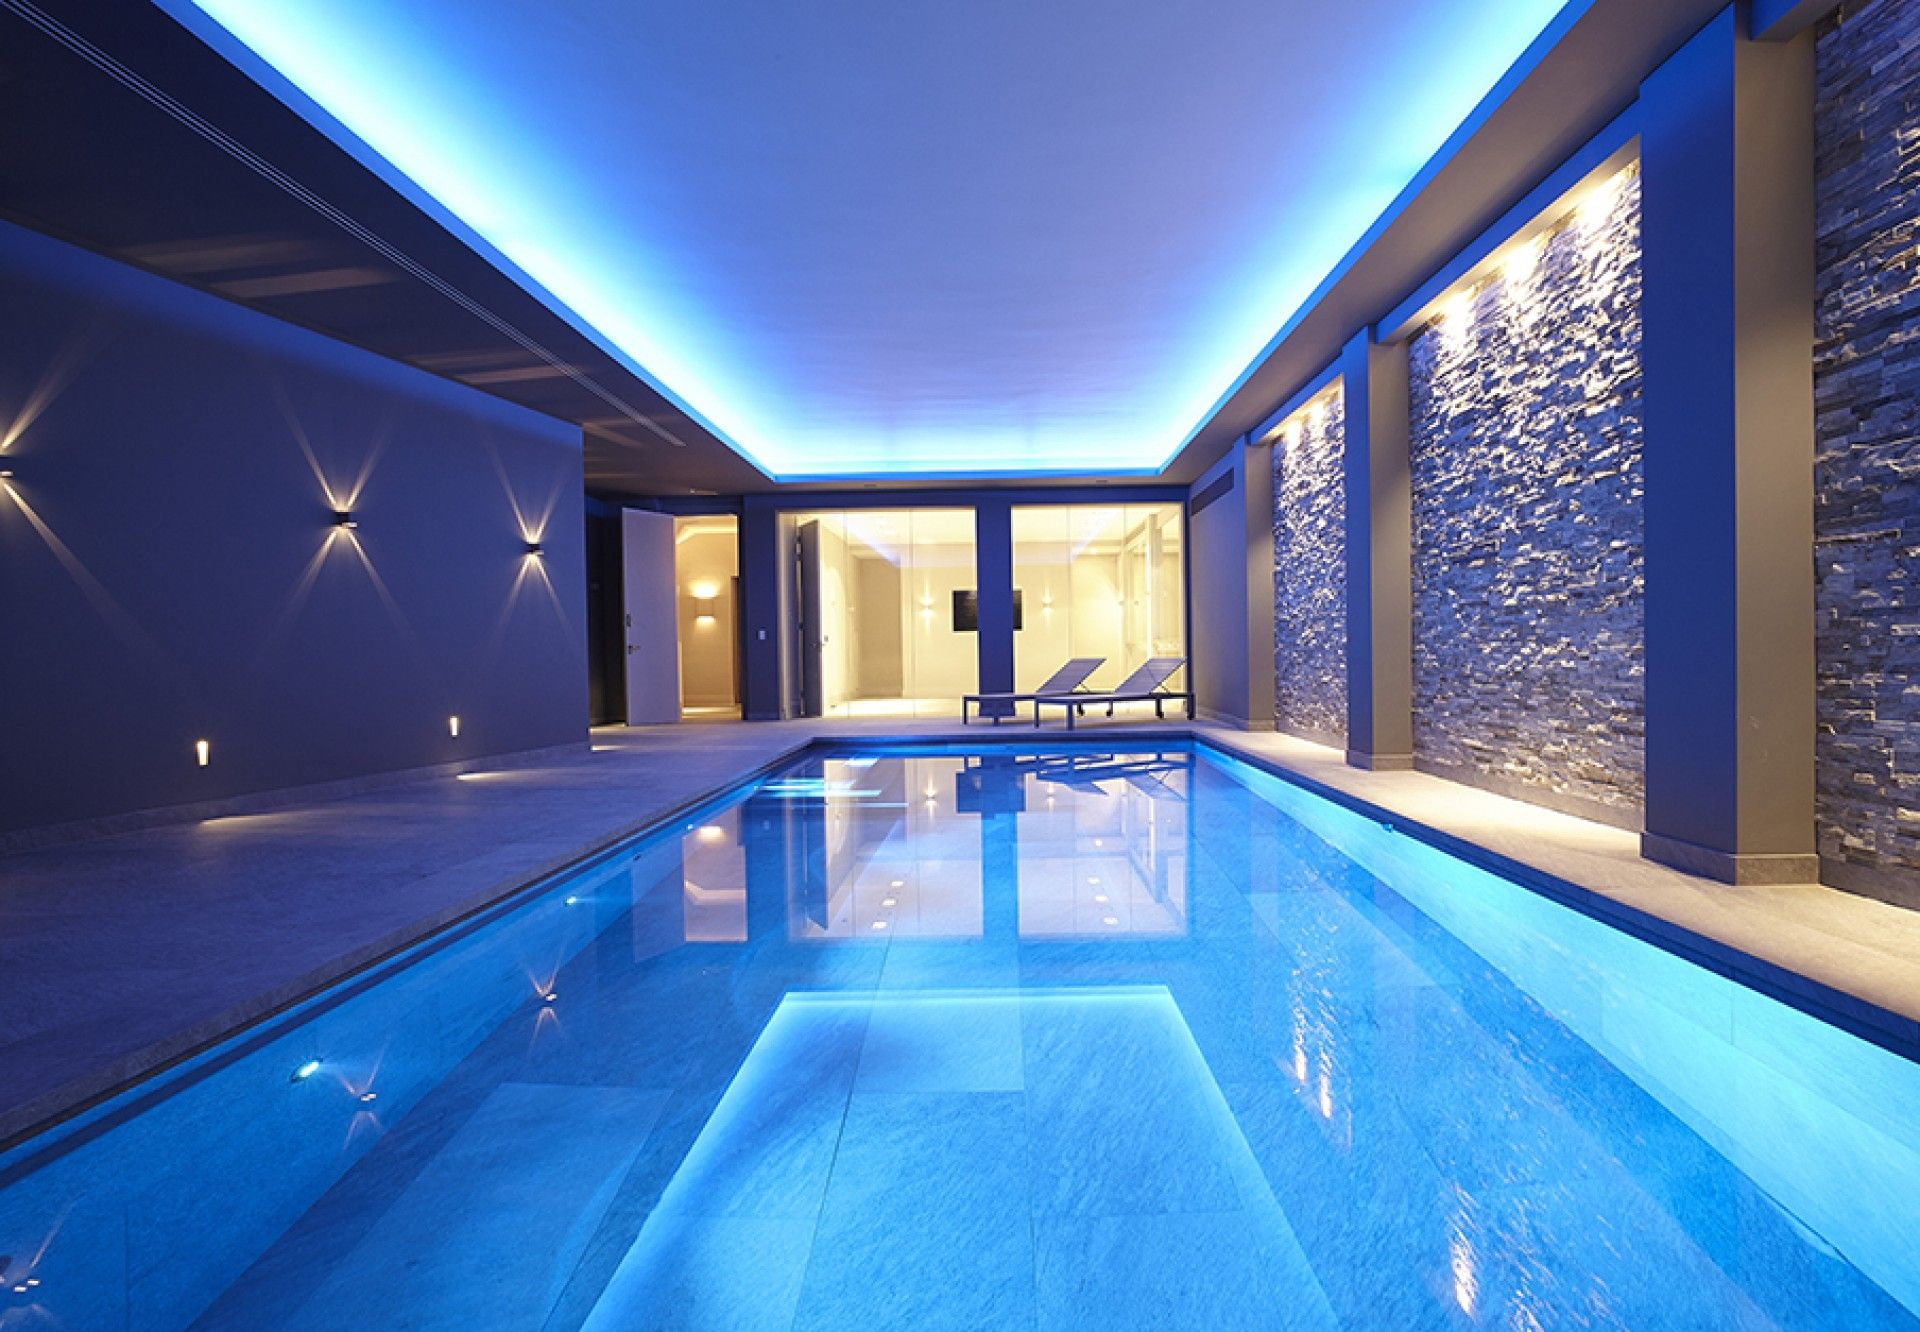 Colourful basement pool london guncast swimming pools - Indoor swimming pool with slides london ...